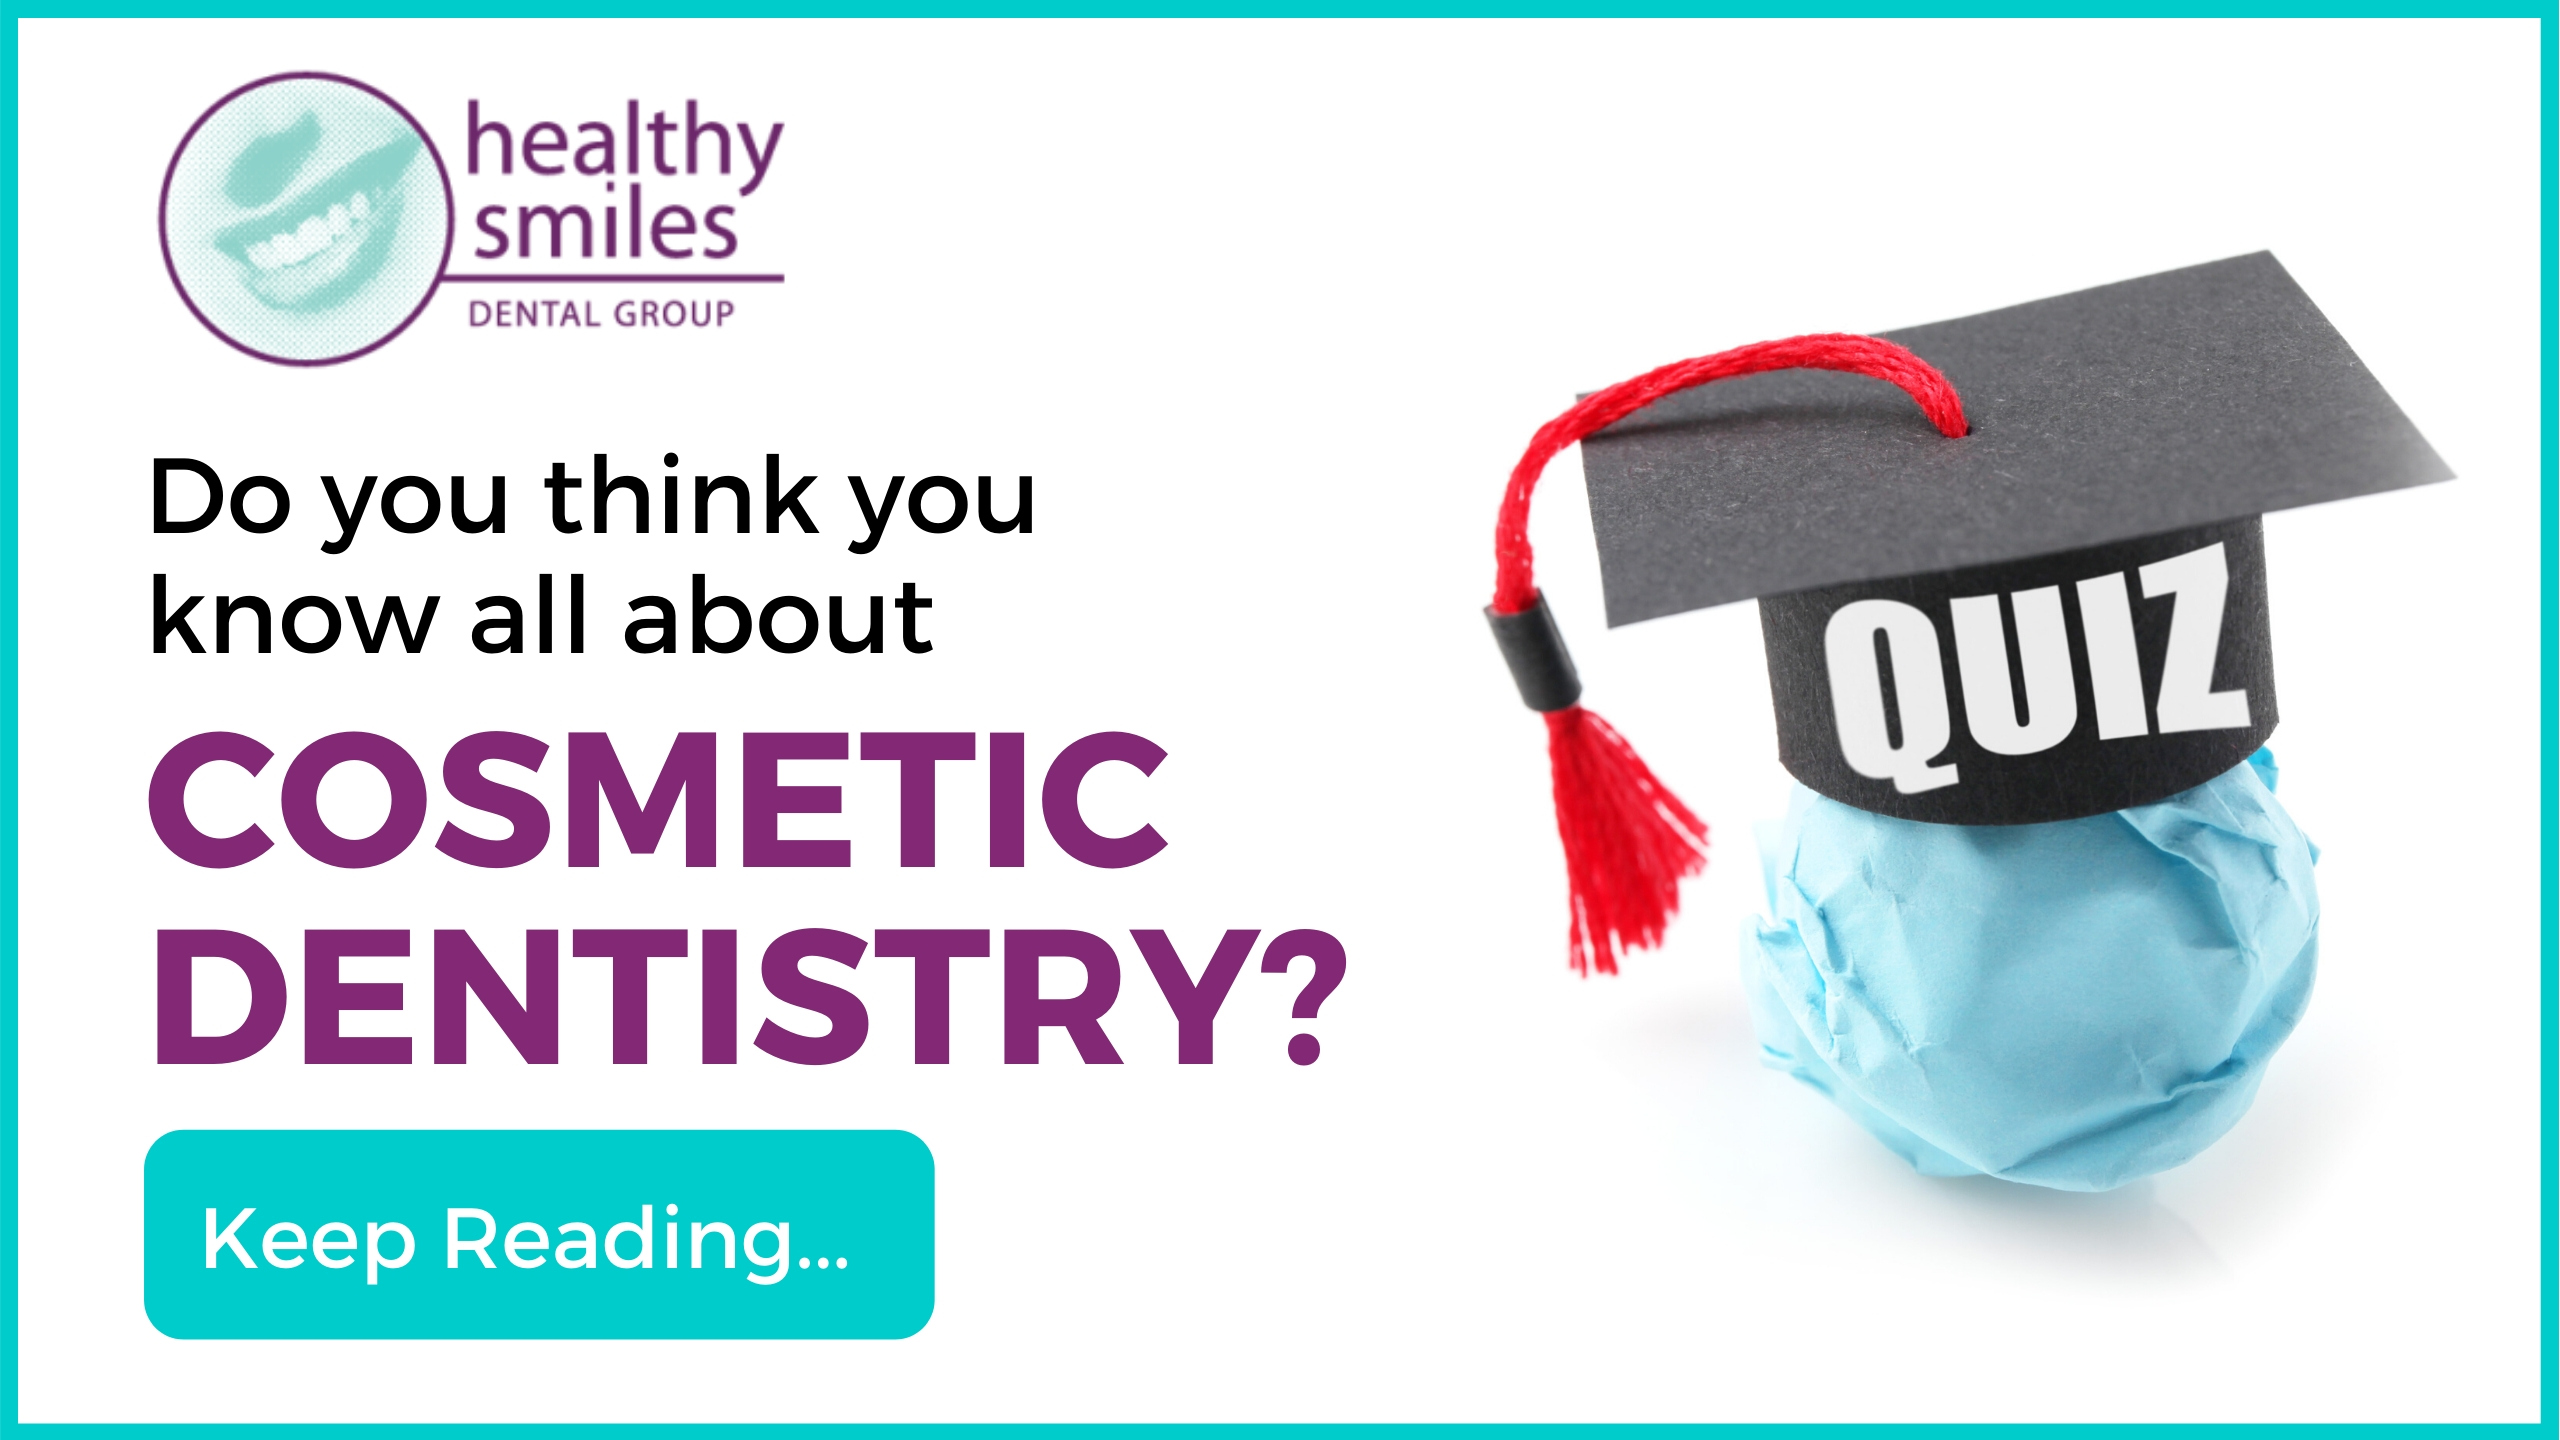 Cosmetic Dentistry Quiz